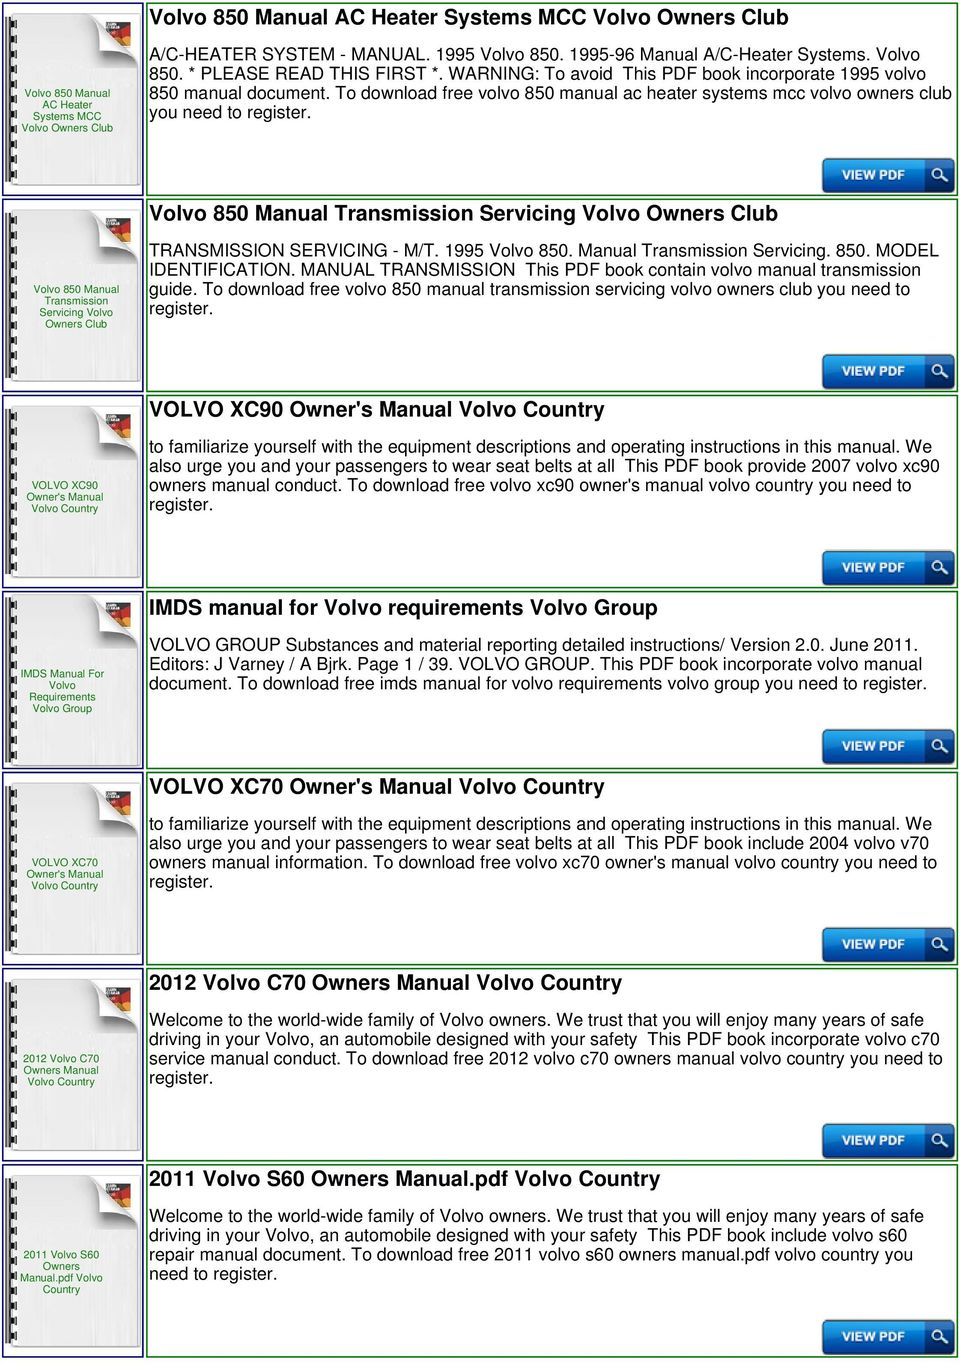 hight resolution of to download free volvo 850 manual ac heater systems mcc volvo owners club you need to